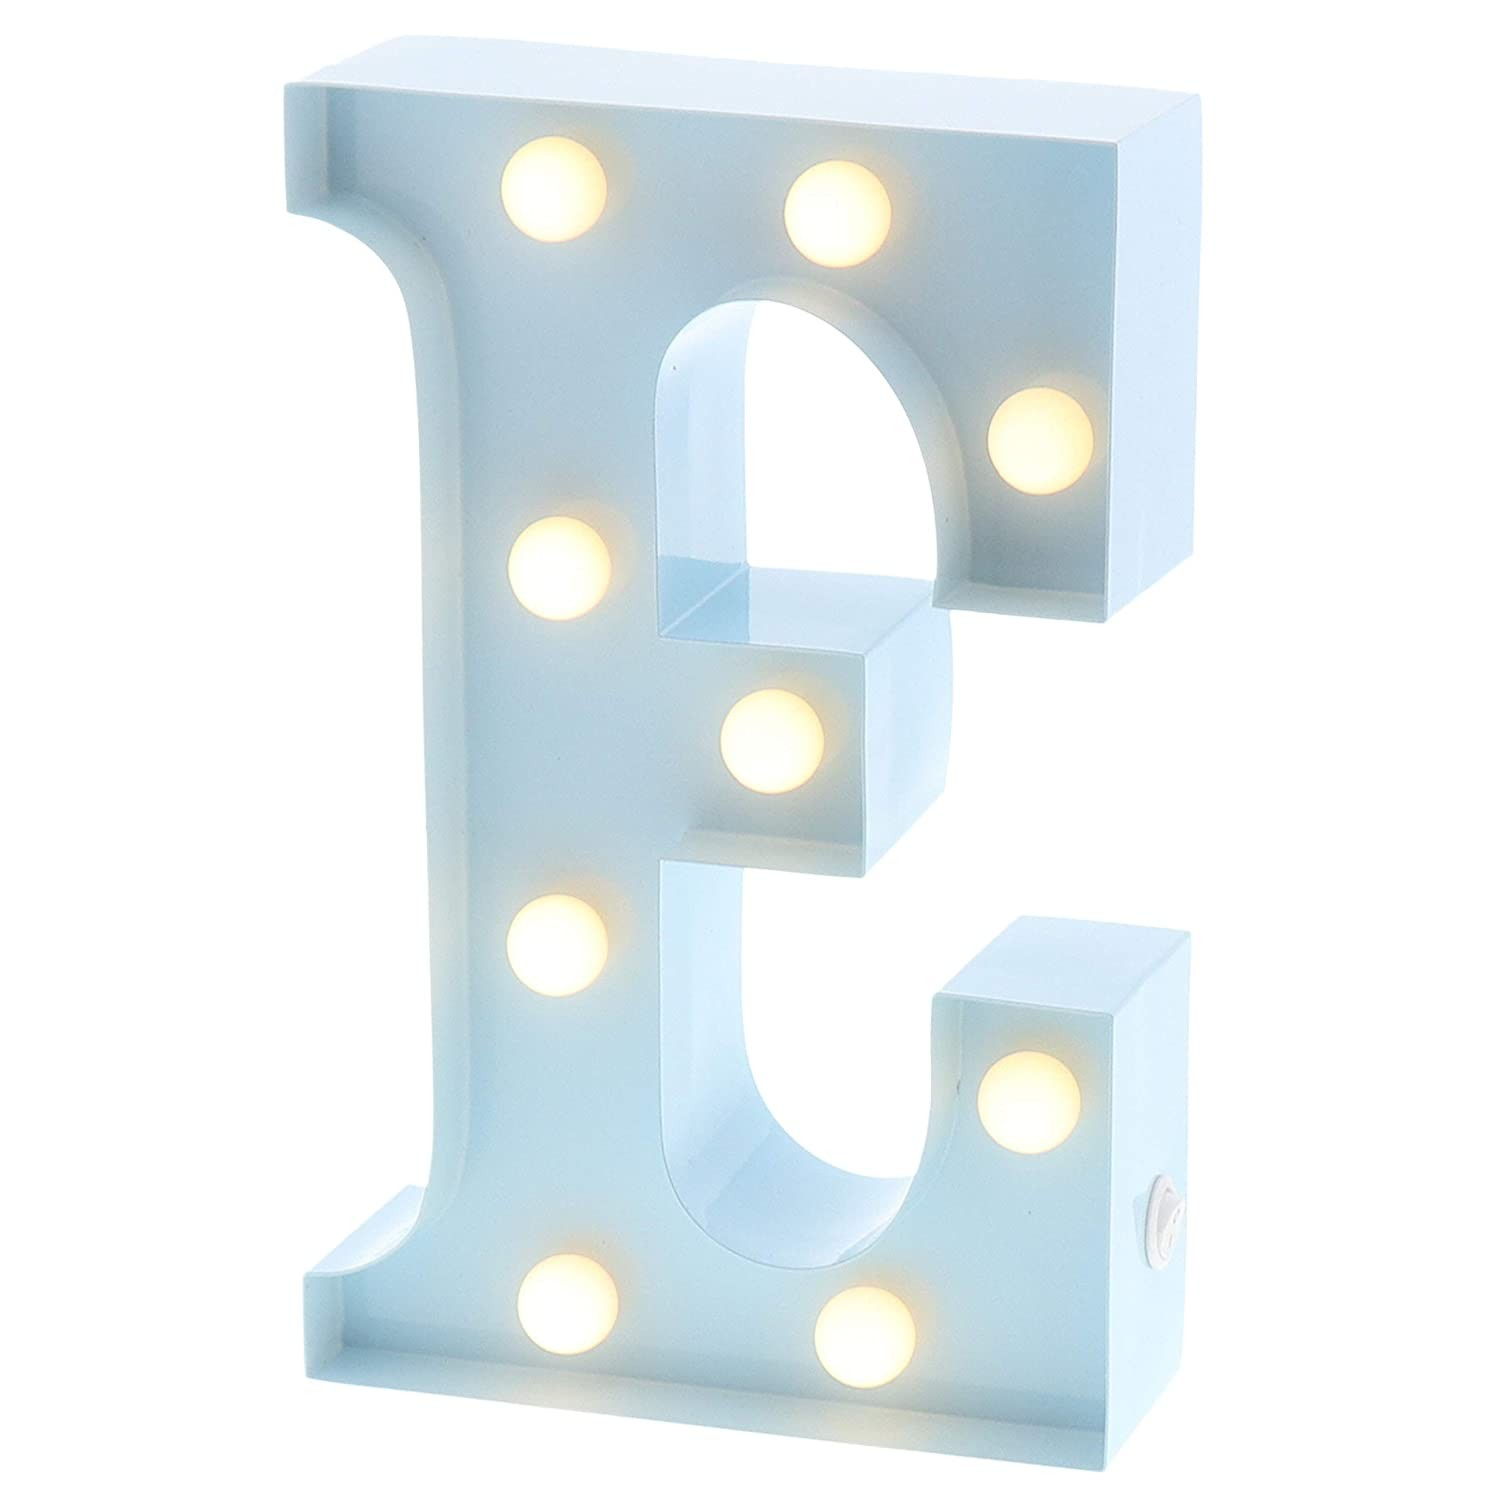 "Marquee Letters that are Lite with Timers Barnyard Designs Metal Marquee Letter E Light Up Wall Initial Nursery Letter Home and event Decoration 9"" Baby Blue Of Marquee Letters that are Lite with Timers"